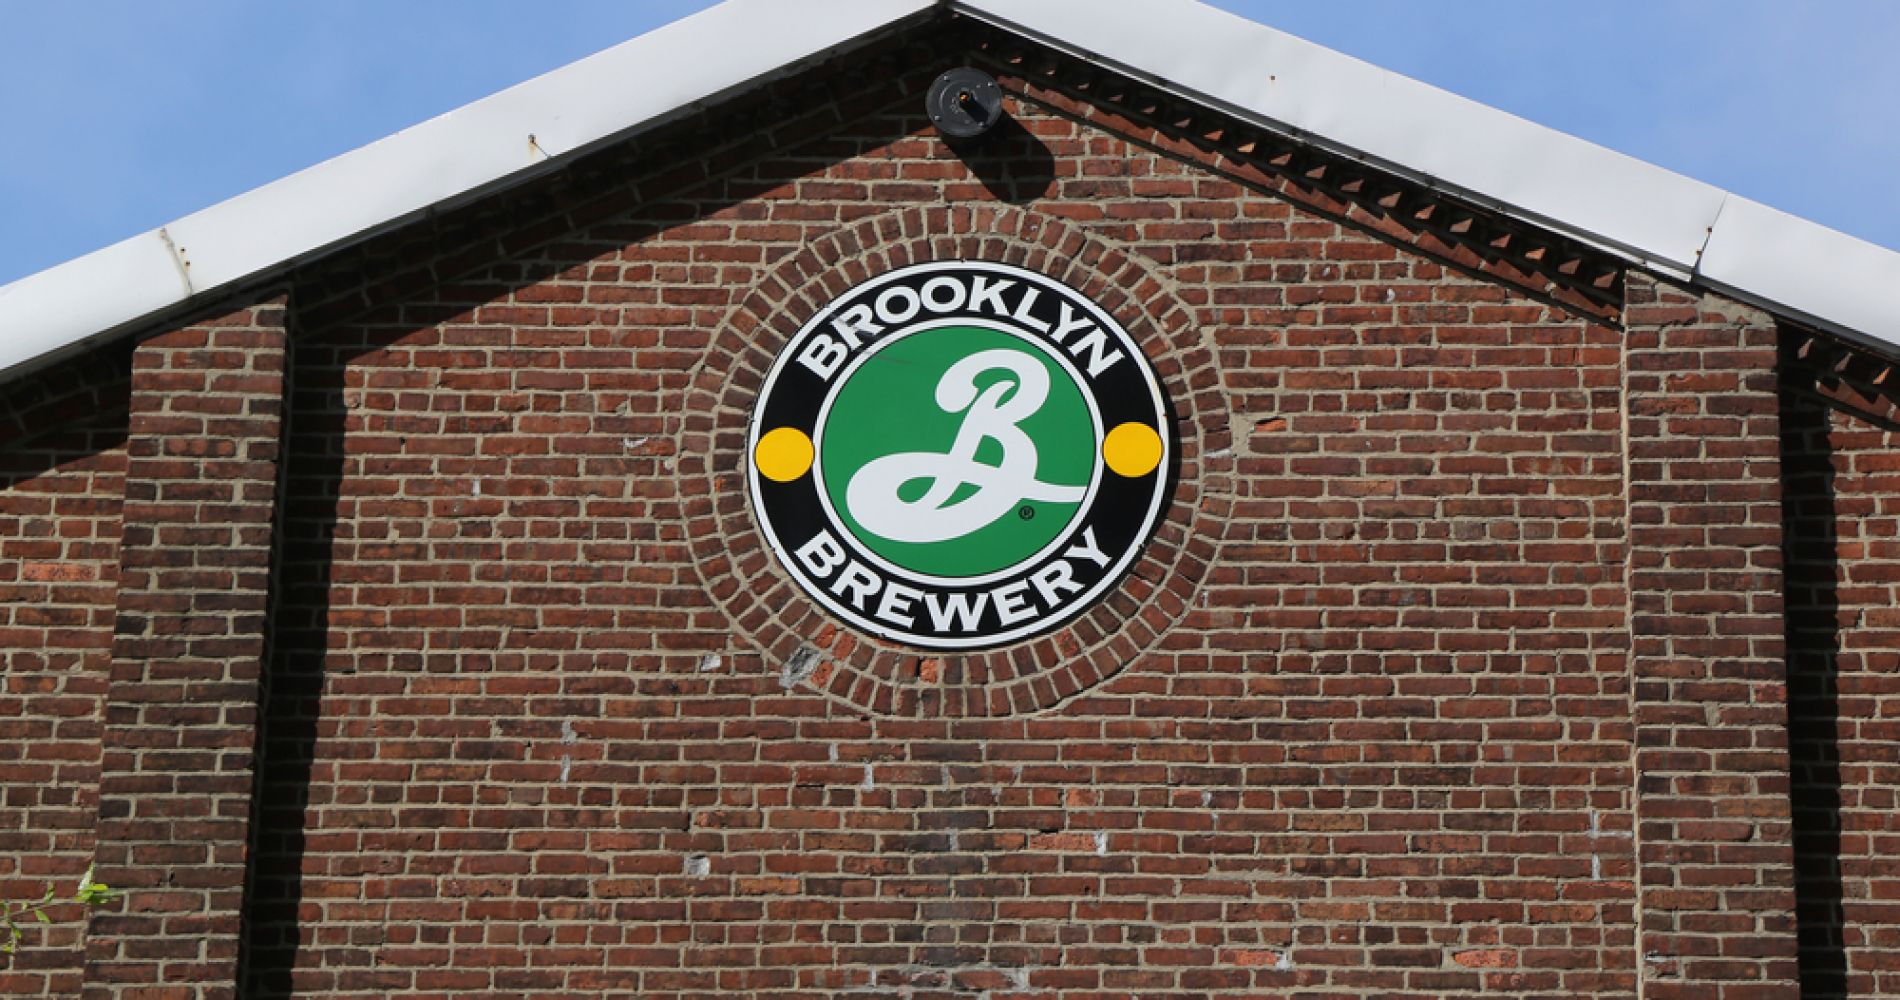 Tour the Brooklyn Brewery in New York